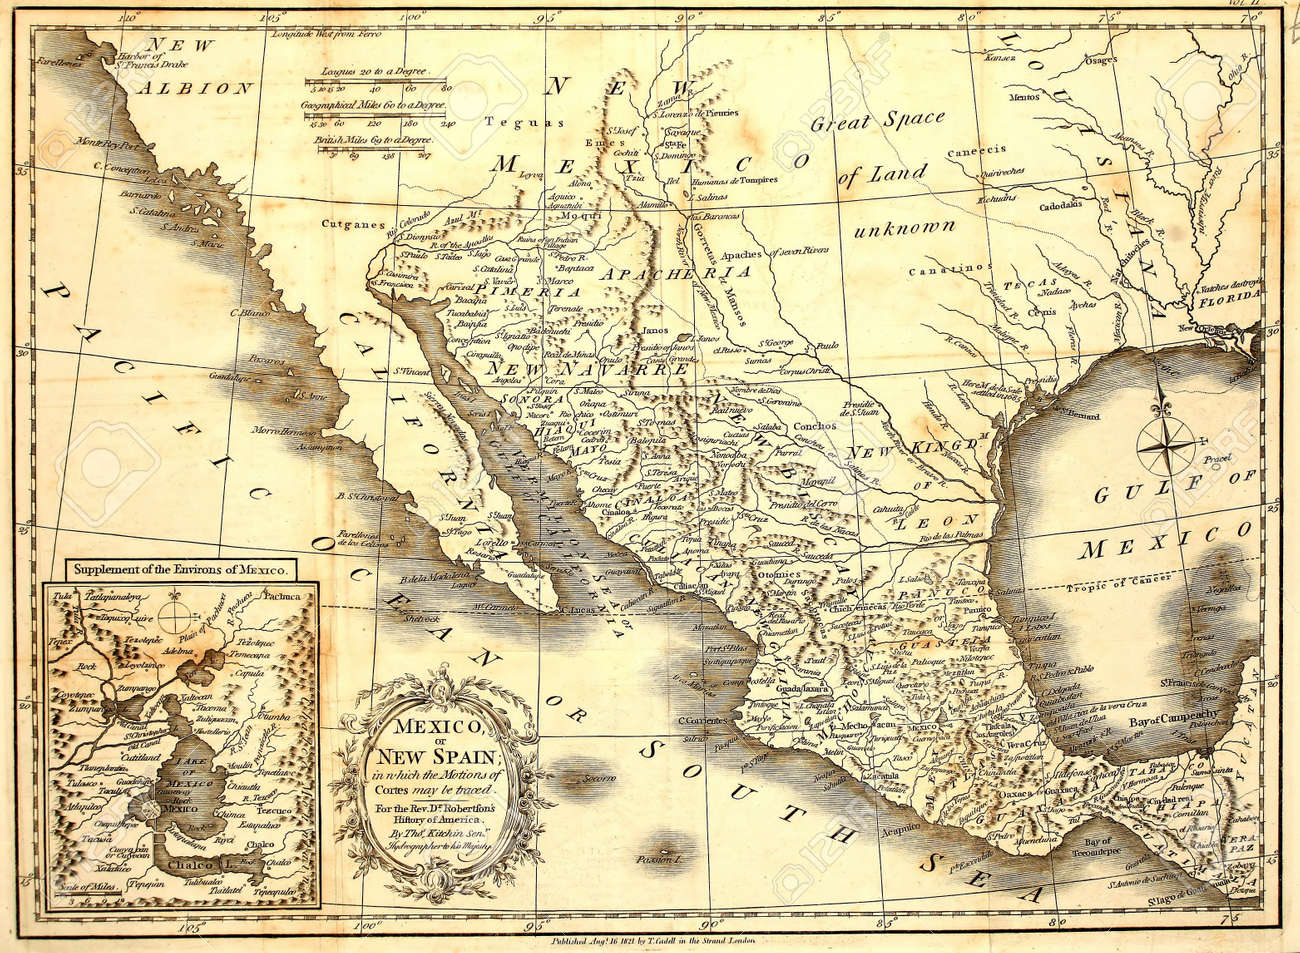 Antique Map Of Mexico Printed In London 1821 Stock Photo, Picture ...